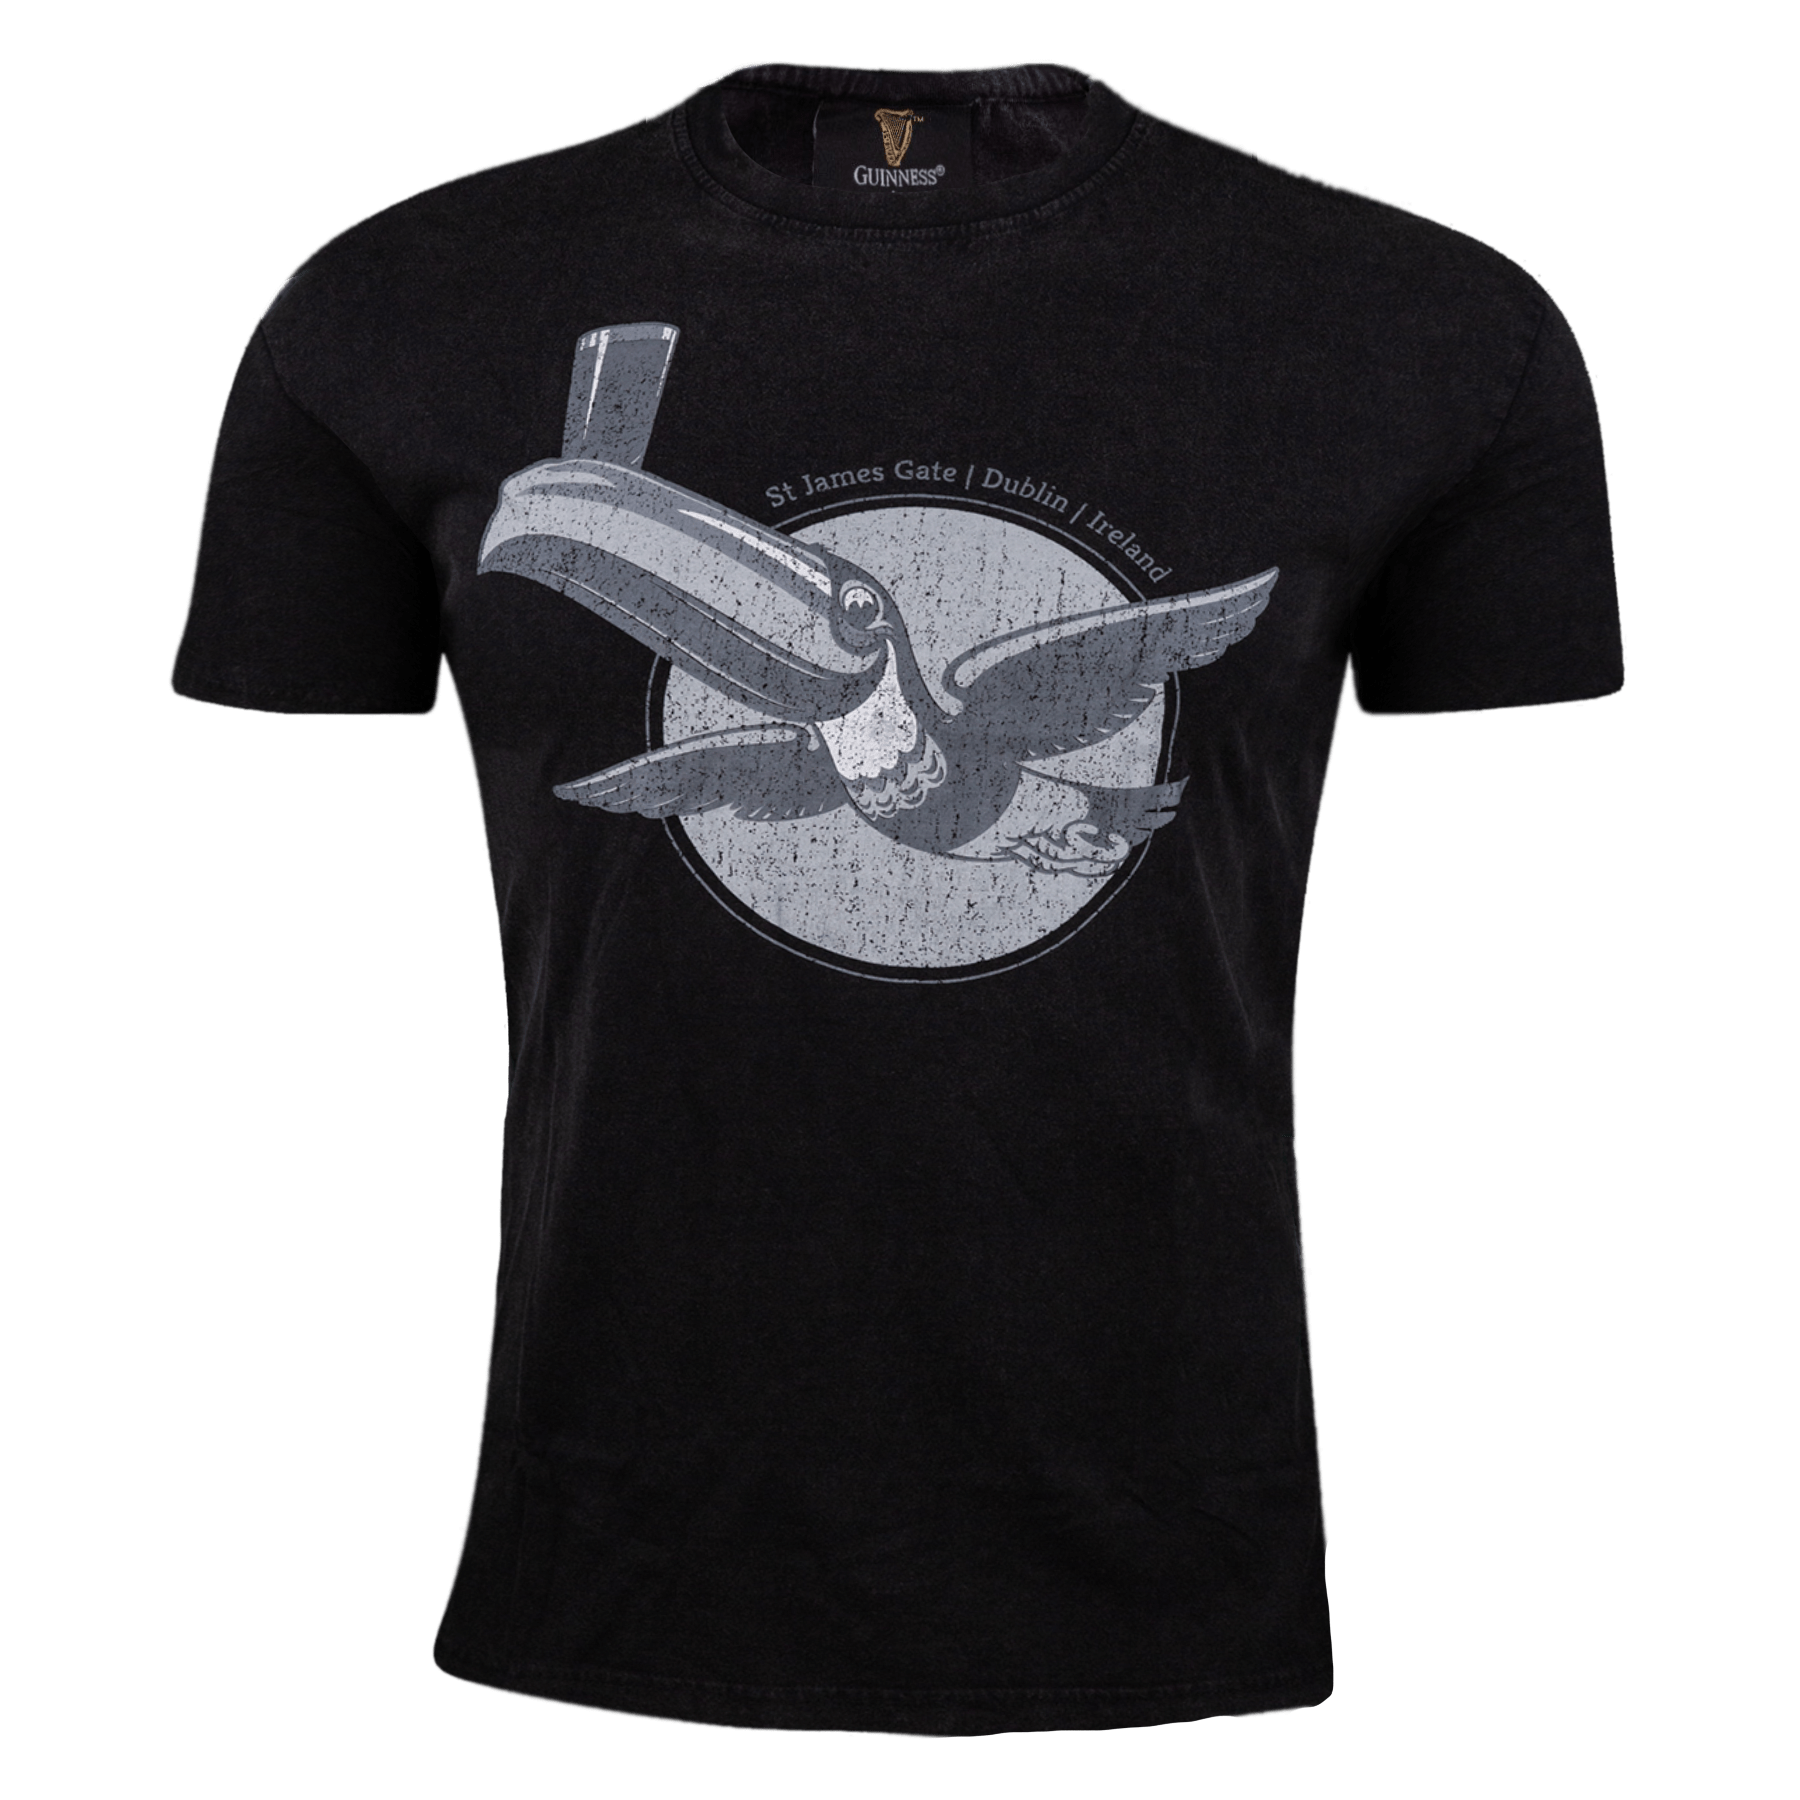 Guinness Vintage Gilroy Toucan Graphic T-Shirt